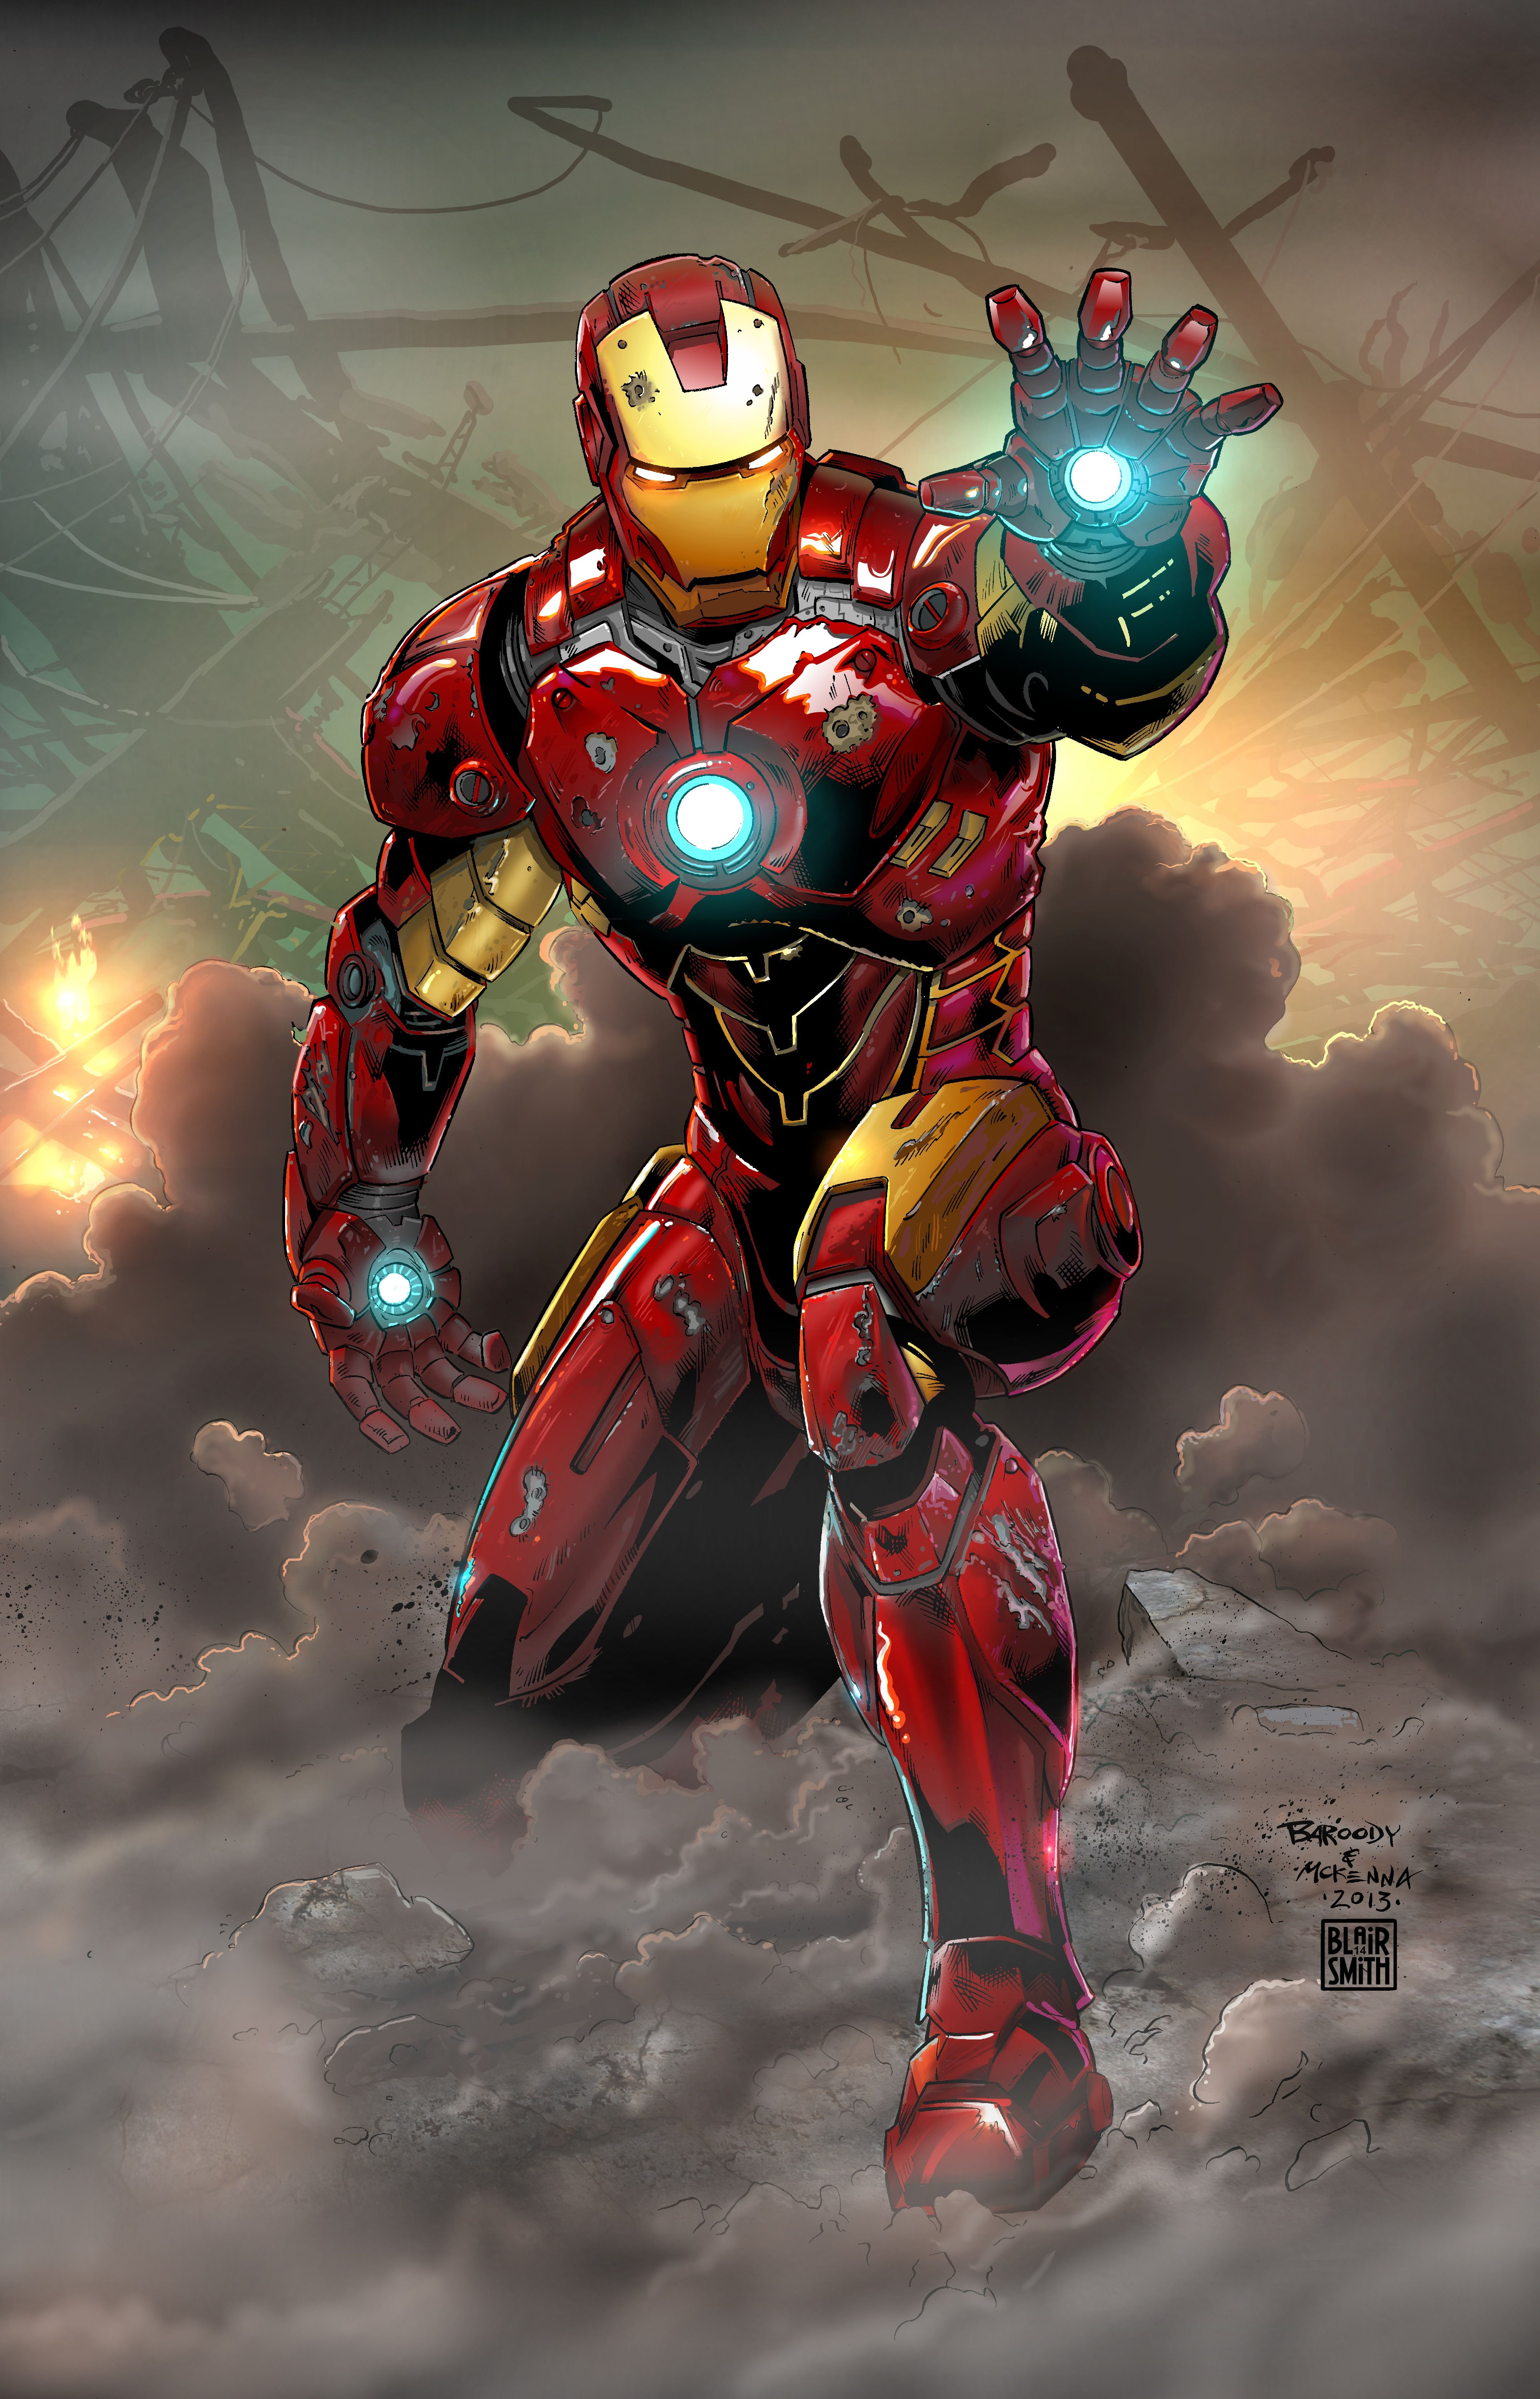 Pin by maheshkumar reddy on superheroes marvel c mics superheroes y villanos - Image de iron man ...